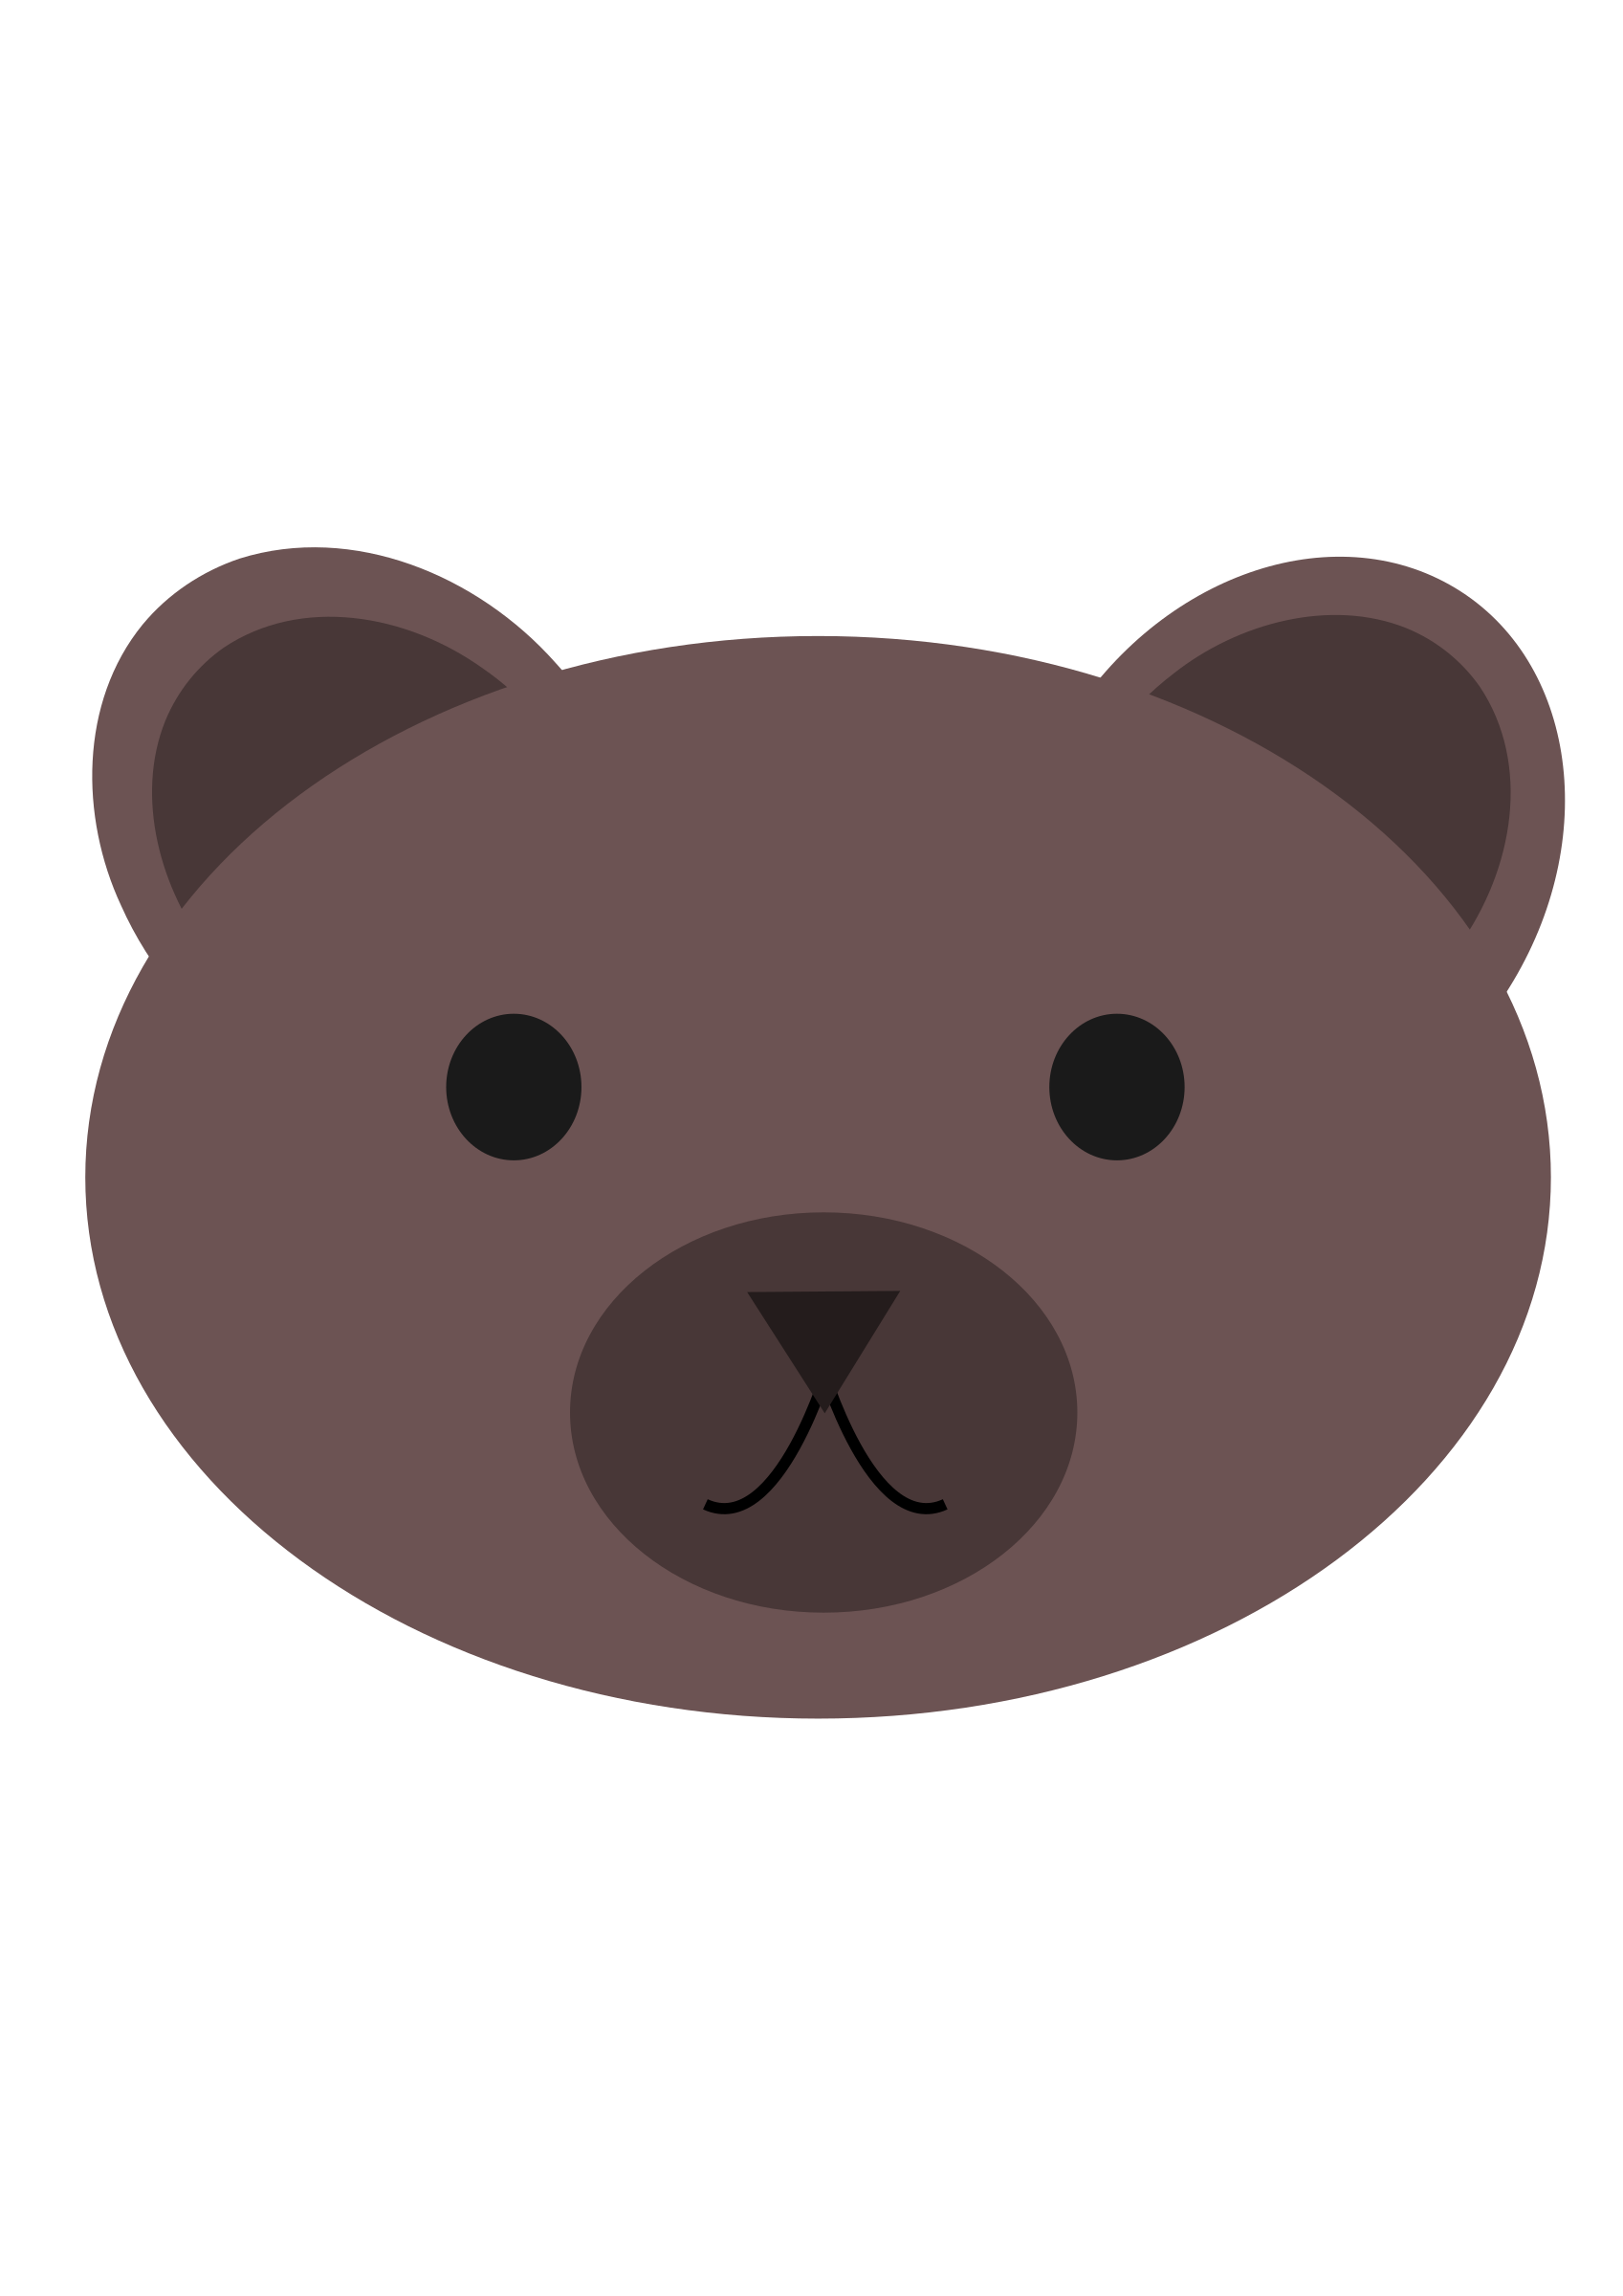 Bear by ching